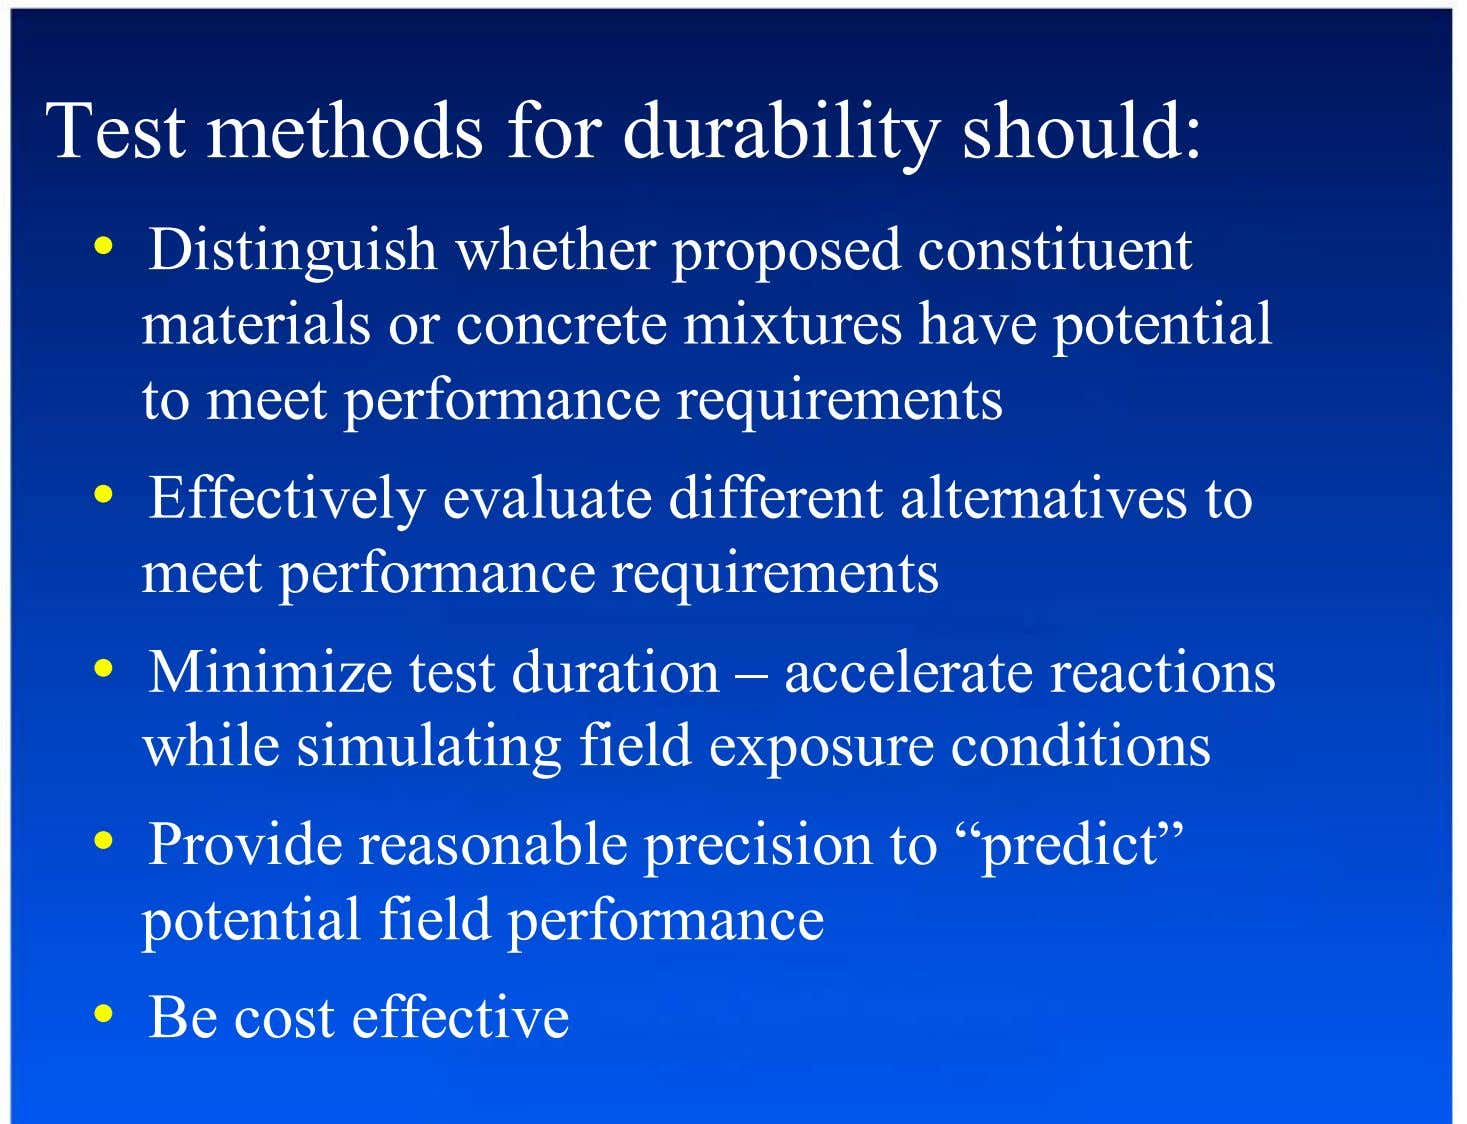 Test methods for durability should: •  Distinguish whether proposed constituent materials or concrete mixtures have